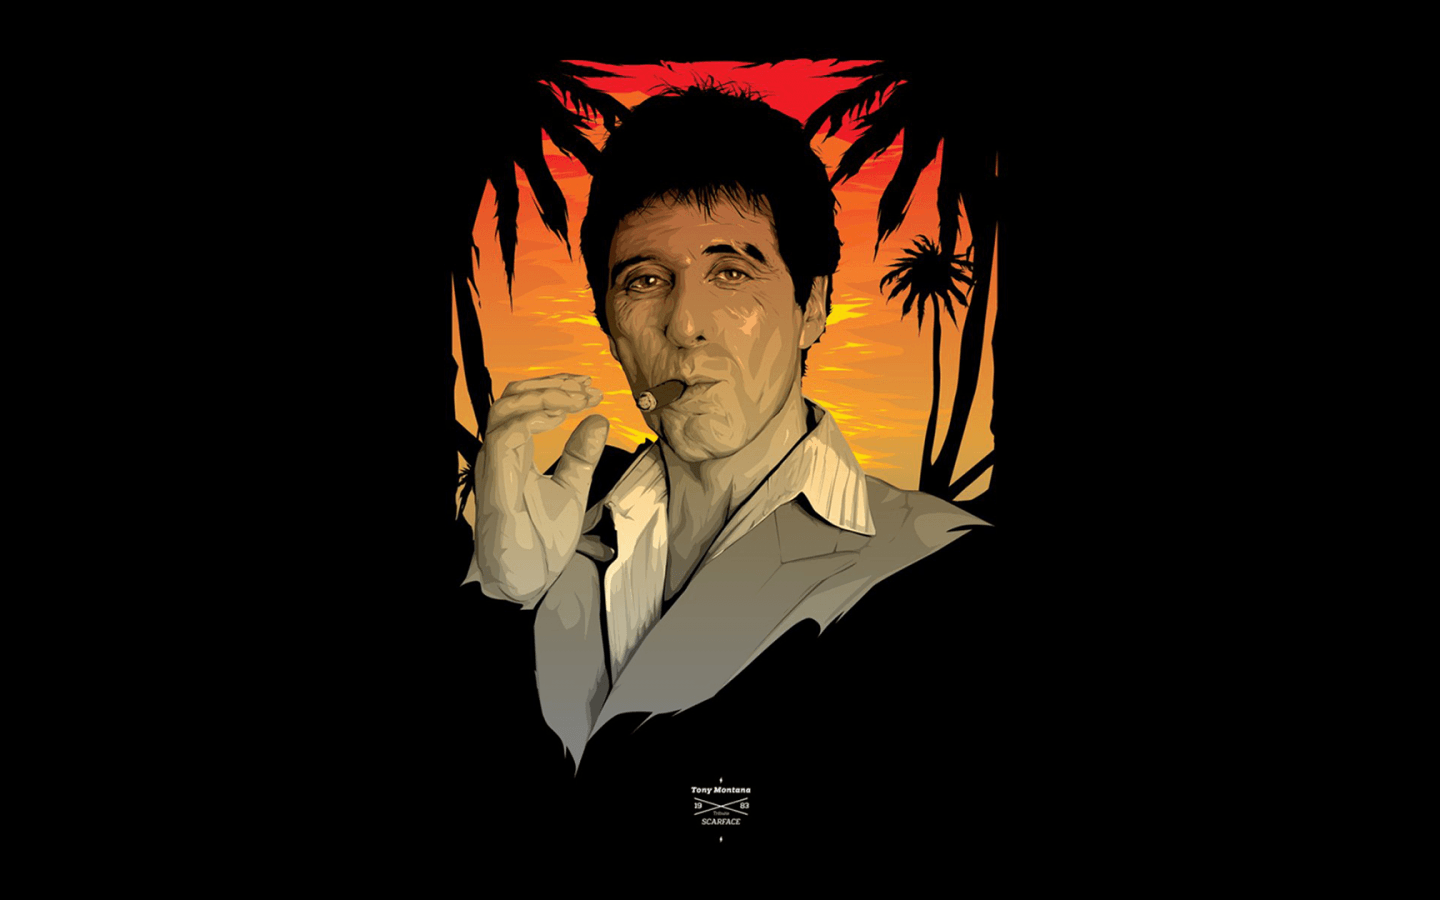 1440x900 Download 1440x900 Scarface, Tony Montana Wallpapers for MacBook Pro ...